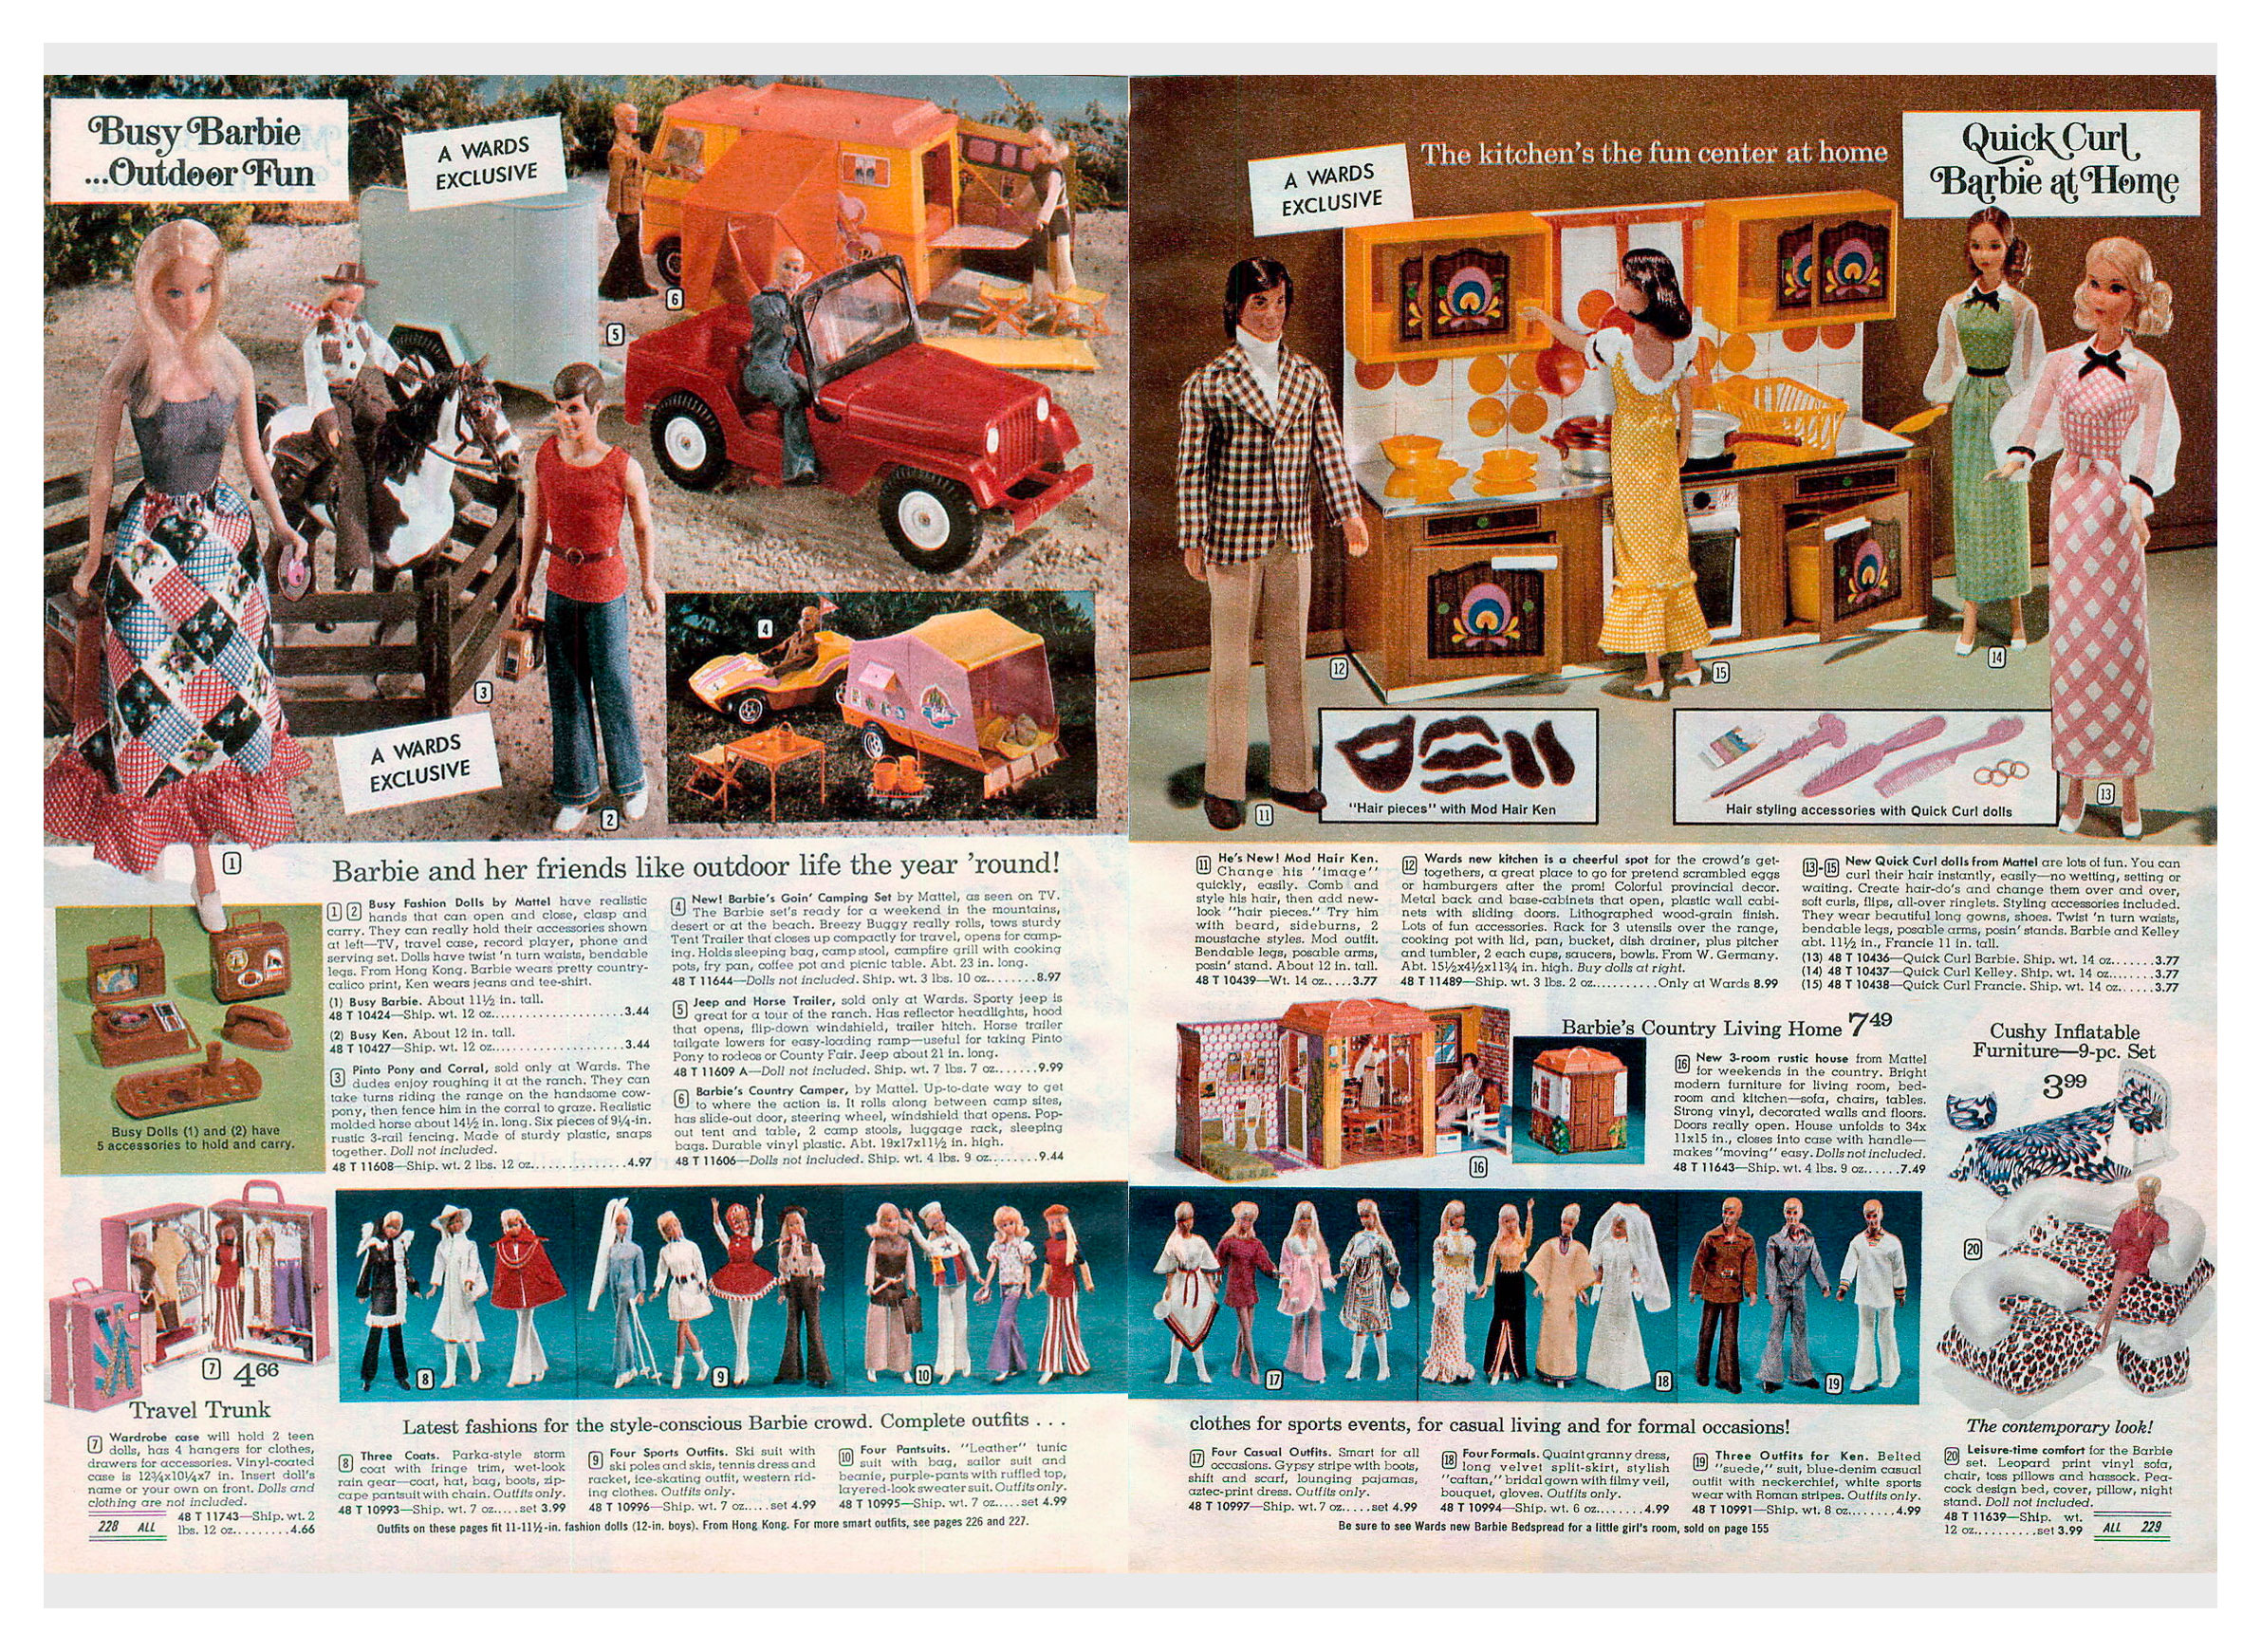 From 1973 Montgomery Ward Christmas catalogue